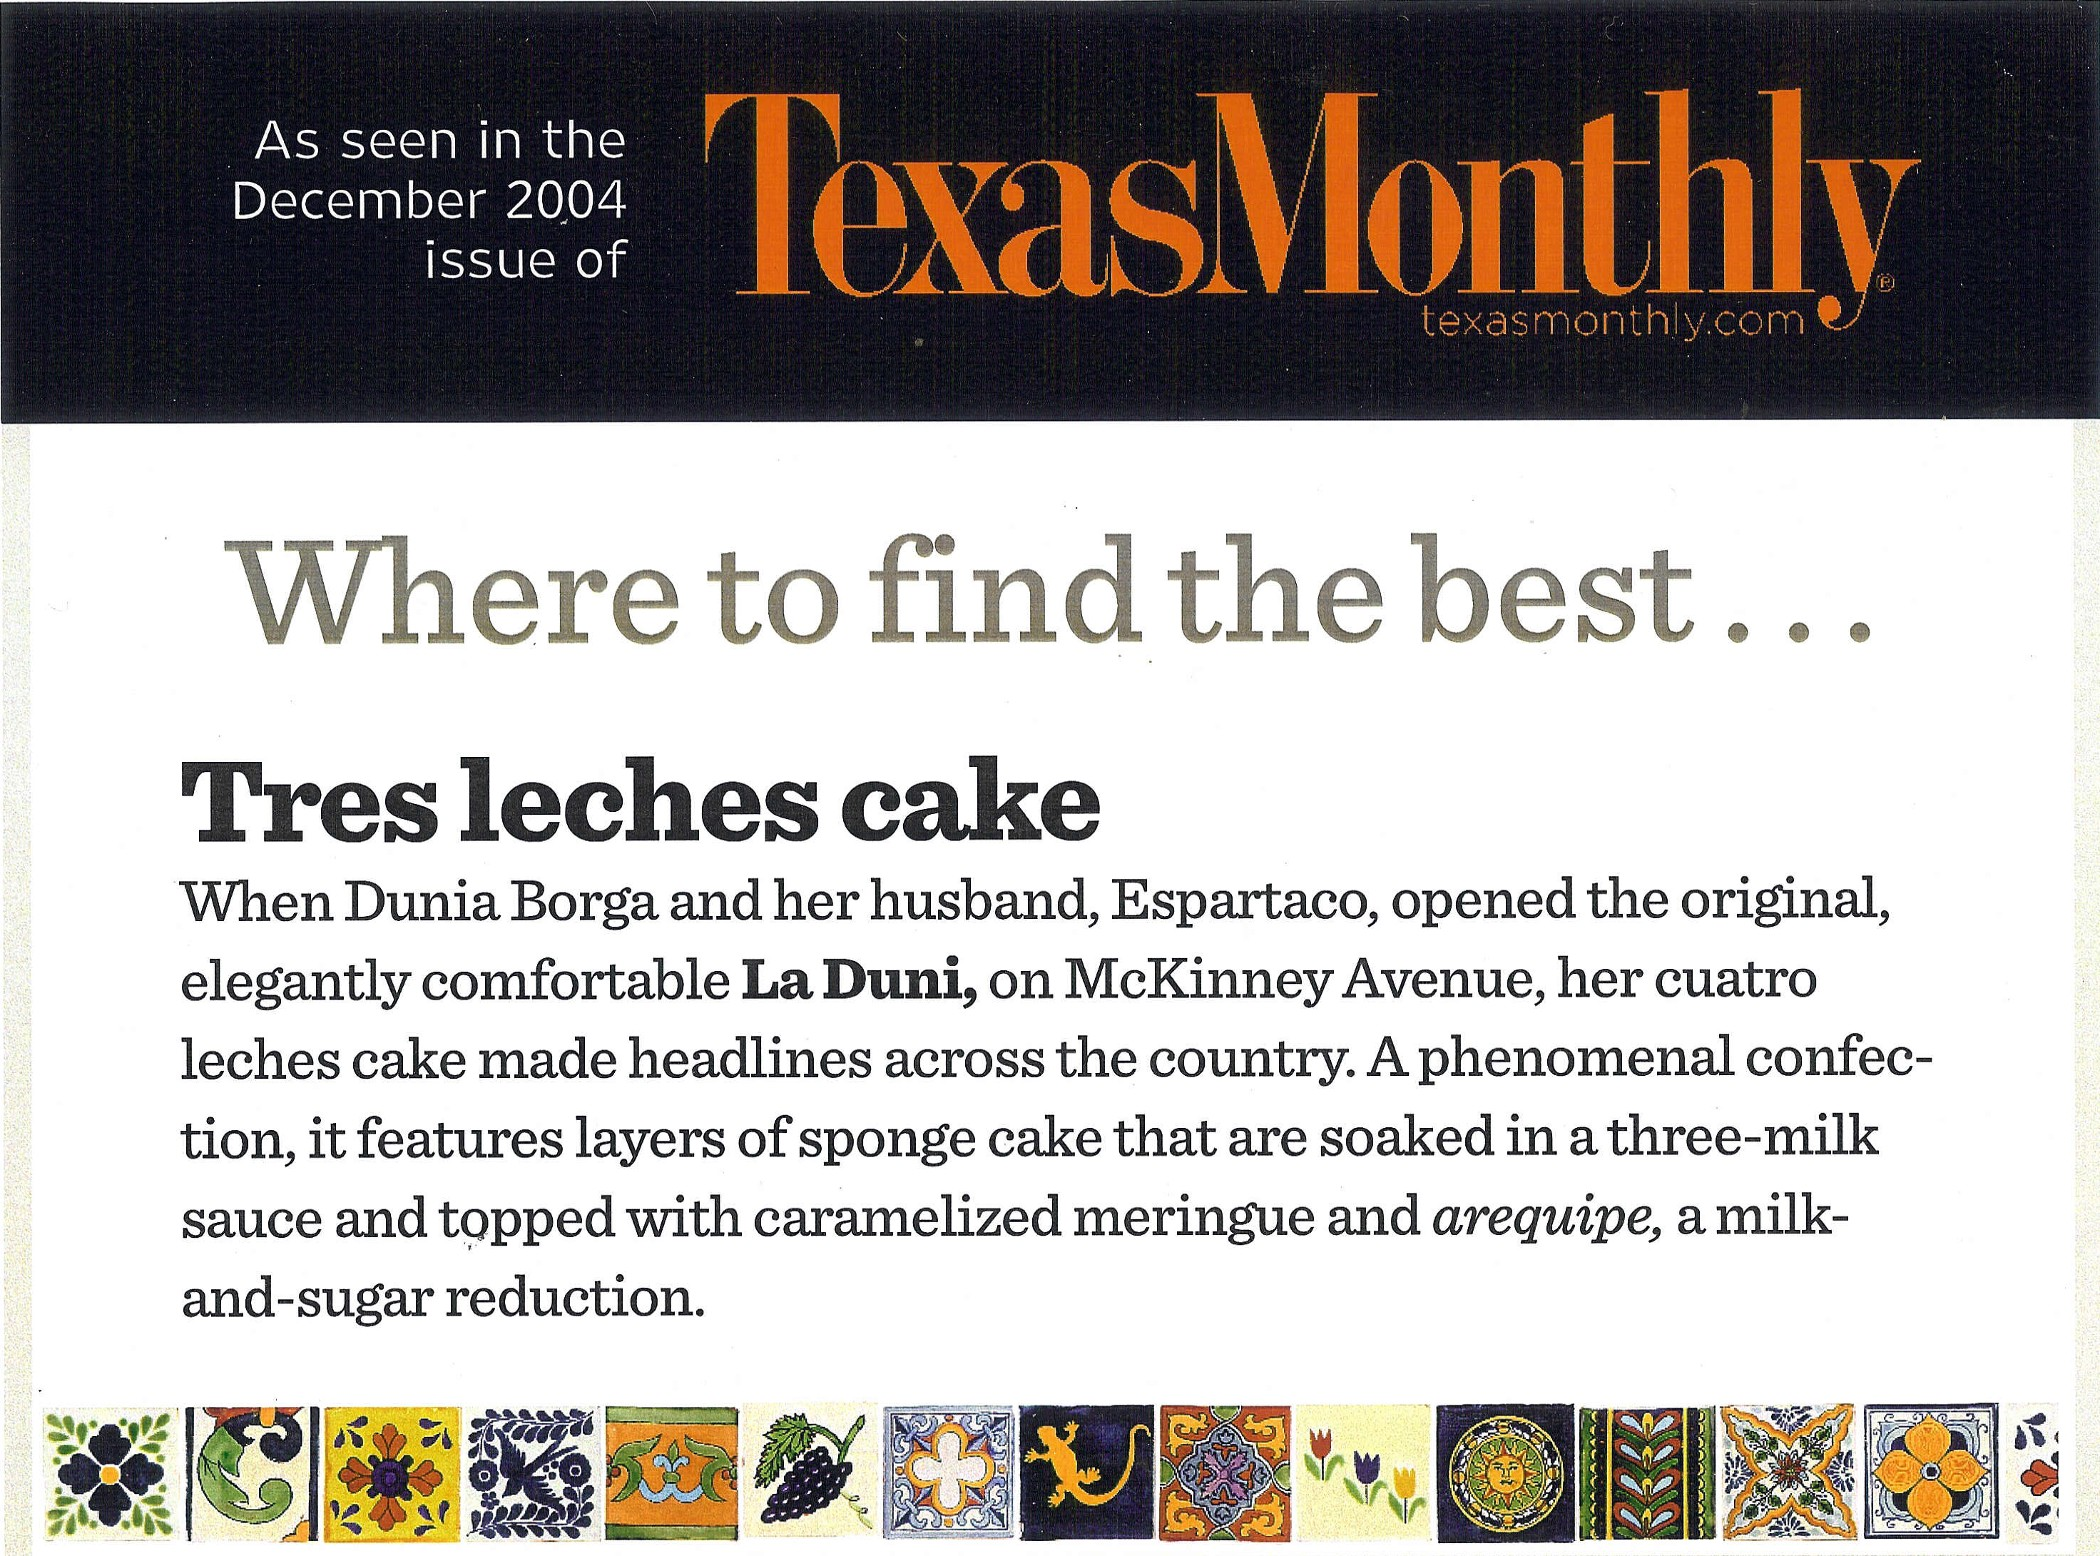 79 Texas Monthly Best 3 Leches